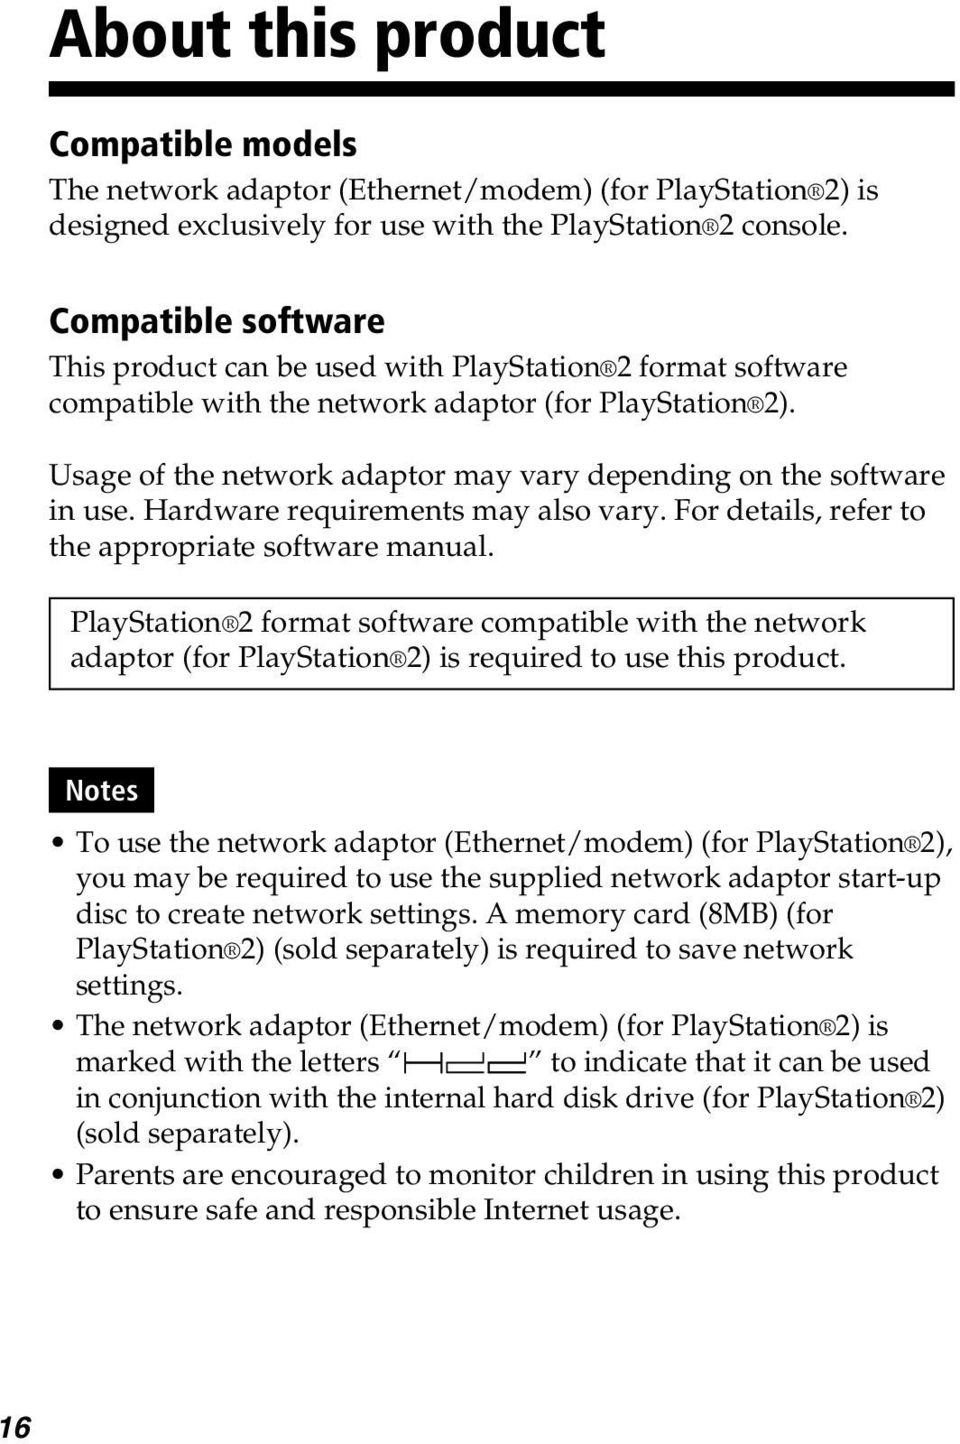 Usage of the network adaptor may vary depending on the software in use. Hardware requirements may also vary. For details, refer to the appropriate software manual.